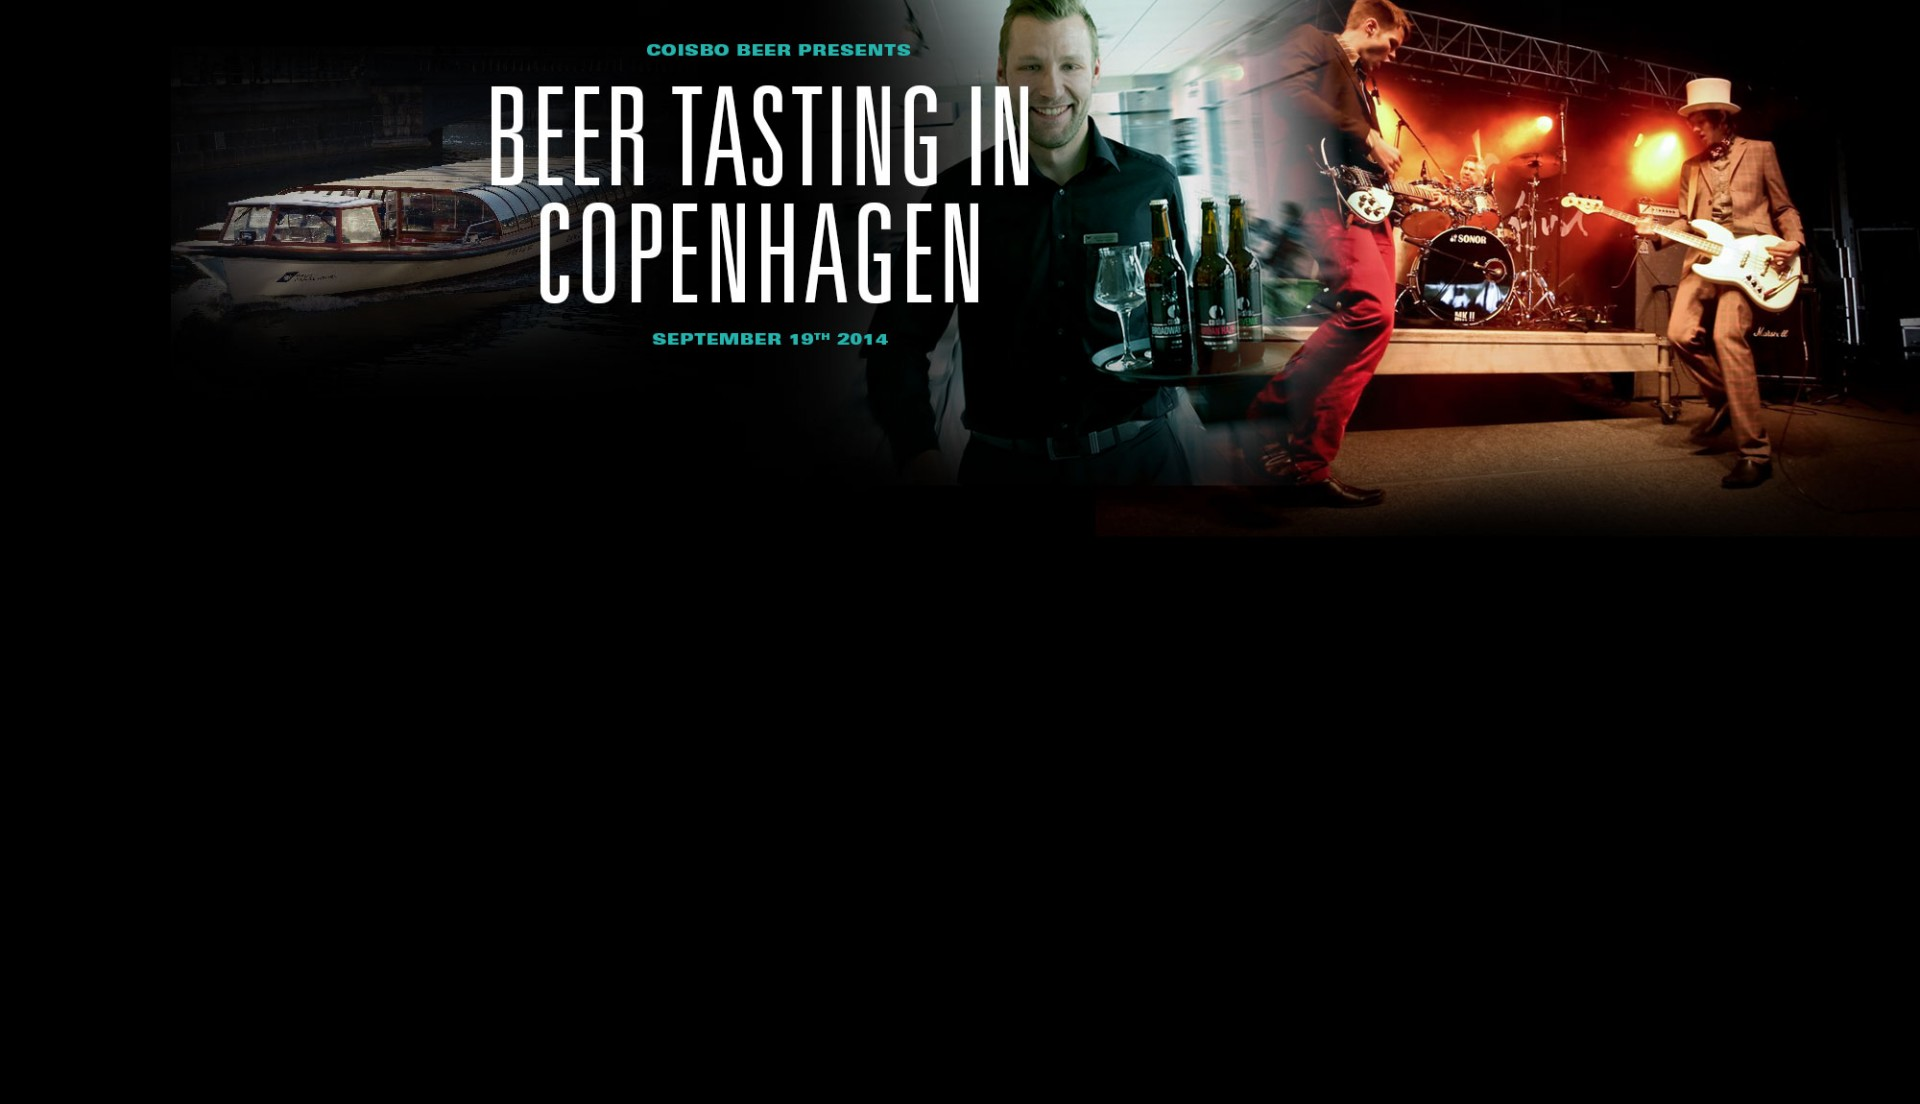 Beer tasting in Copenhagen